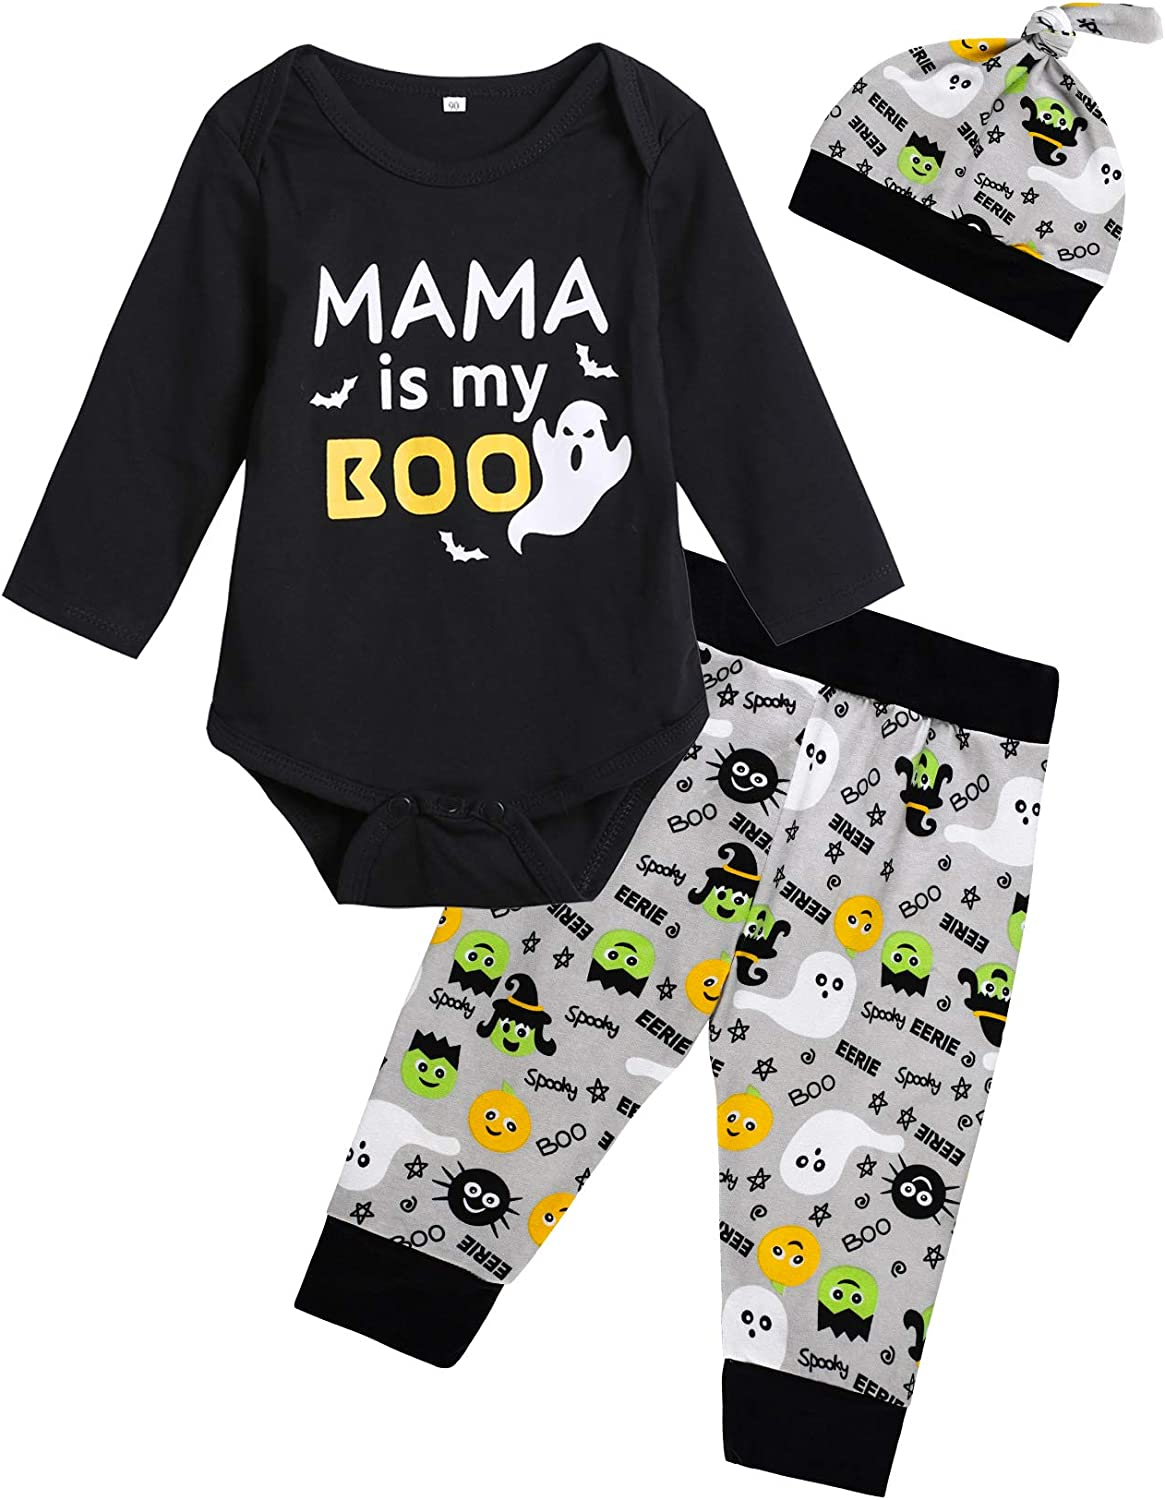 Baby Boys' Mama is My Boo Outfit Set Halloween Ghost Romper